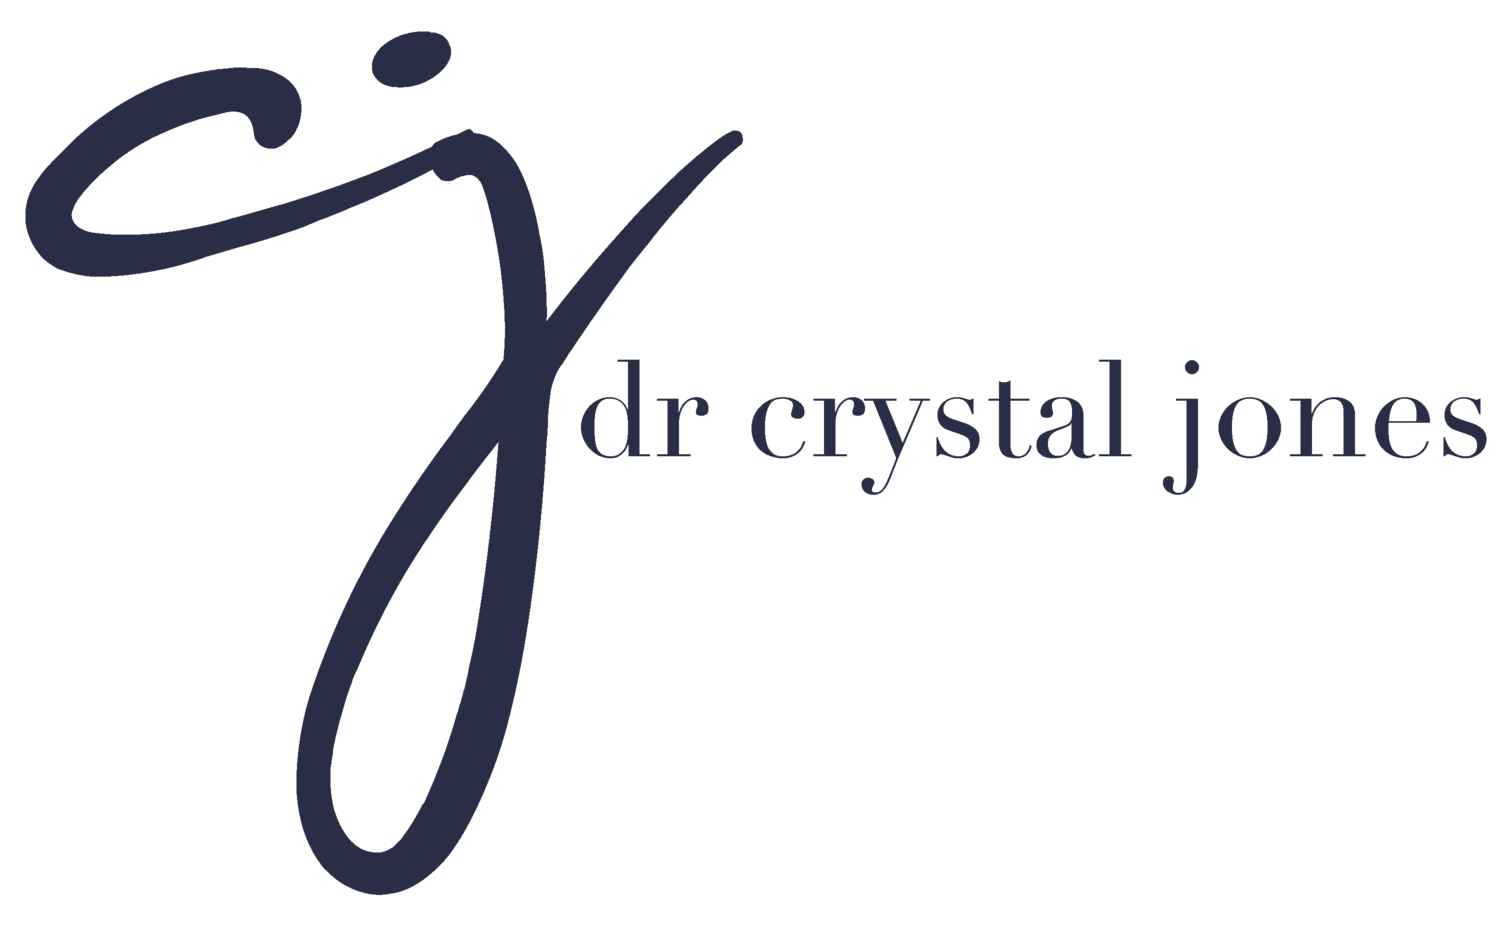 Dr Crystal Jones